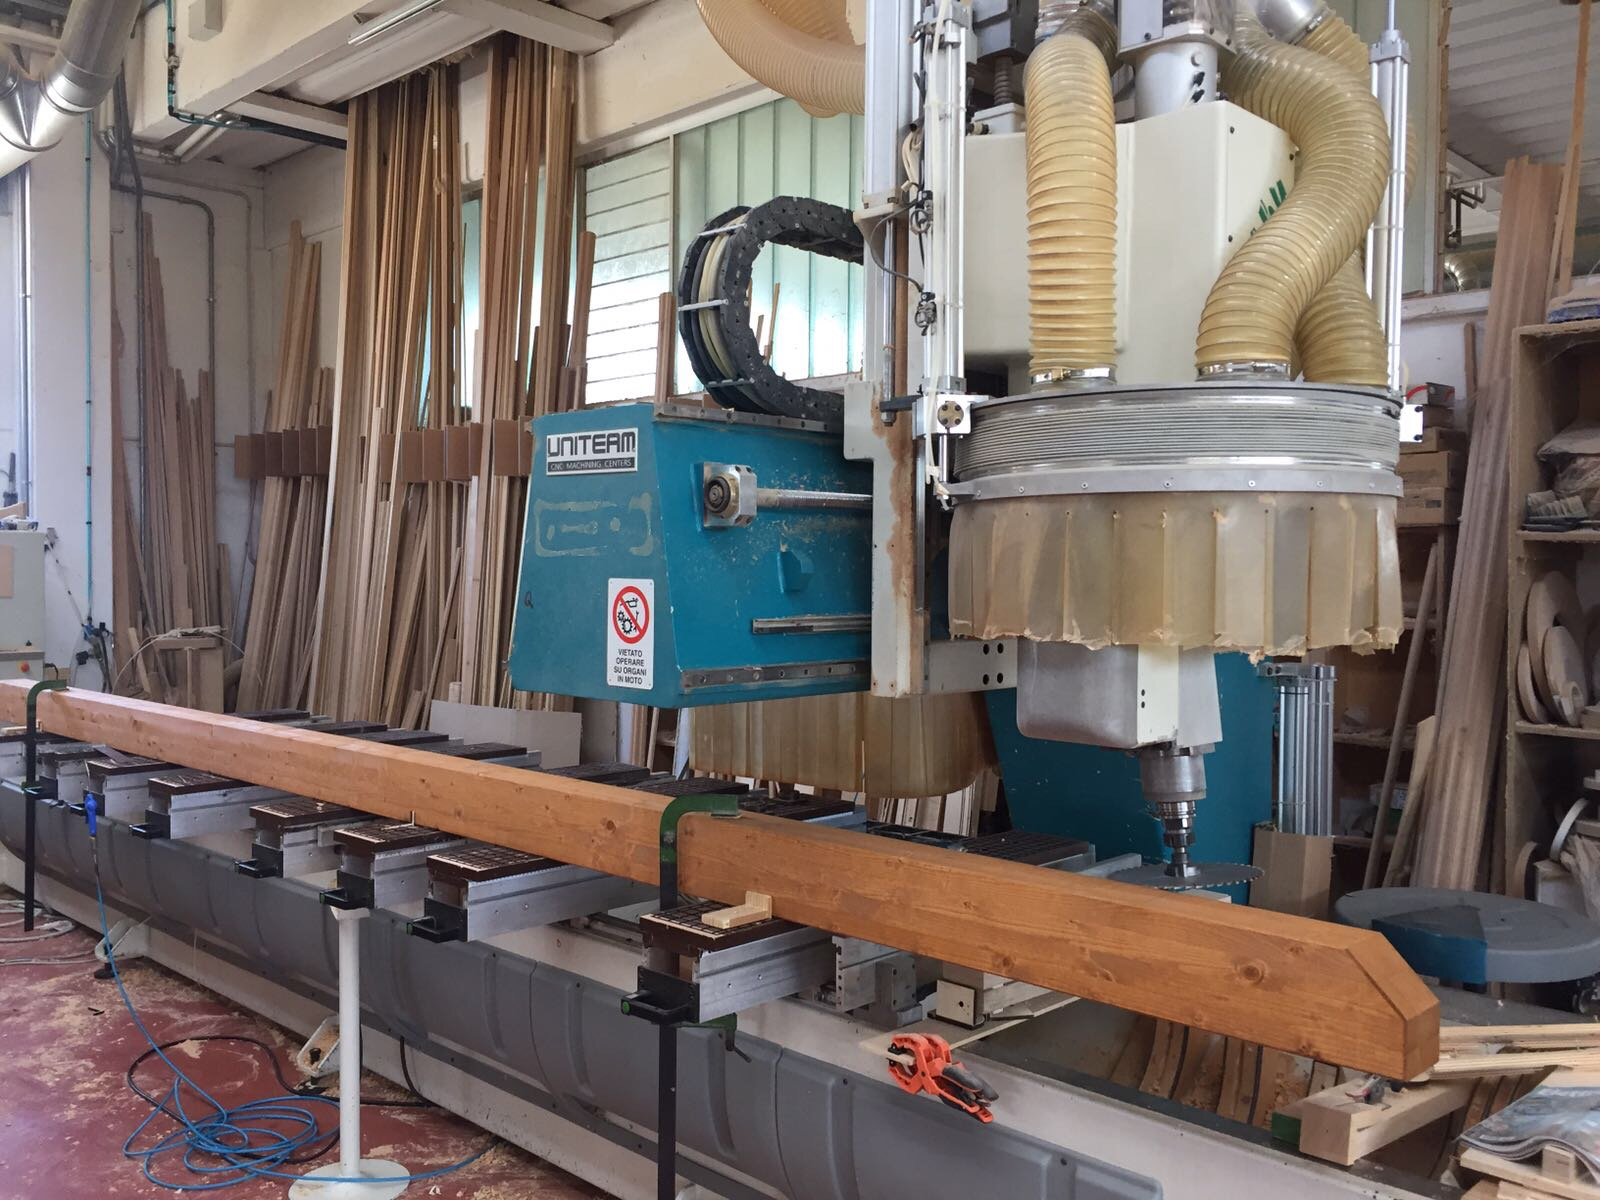 Customizing a beam with a 5-axis CNC cutter.